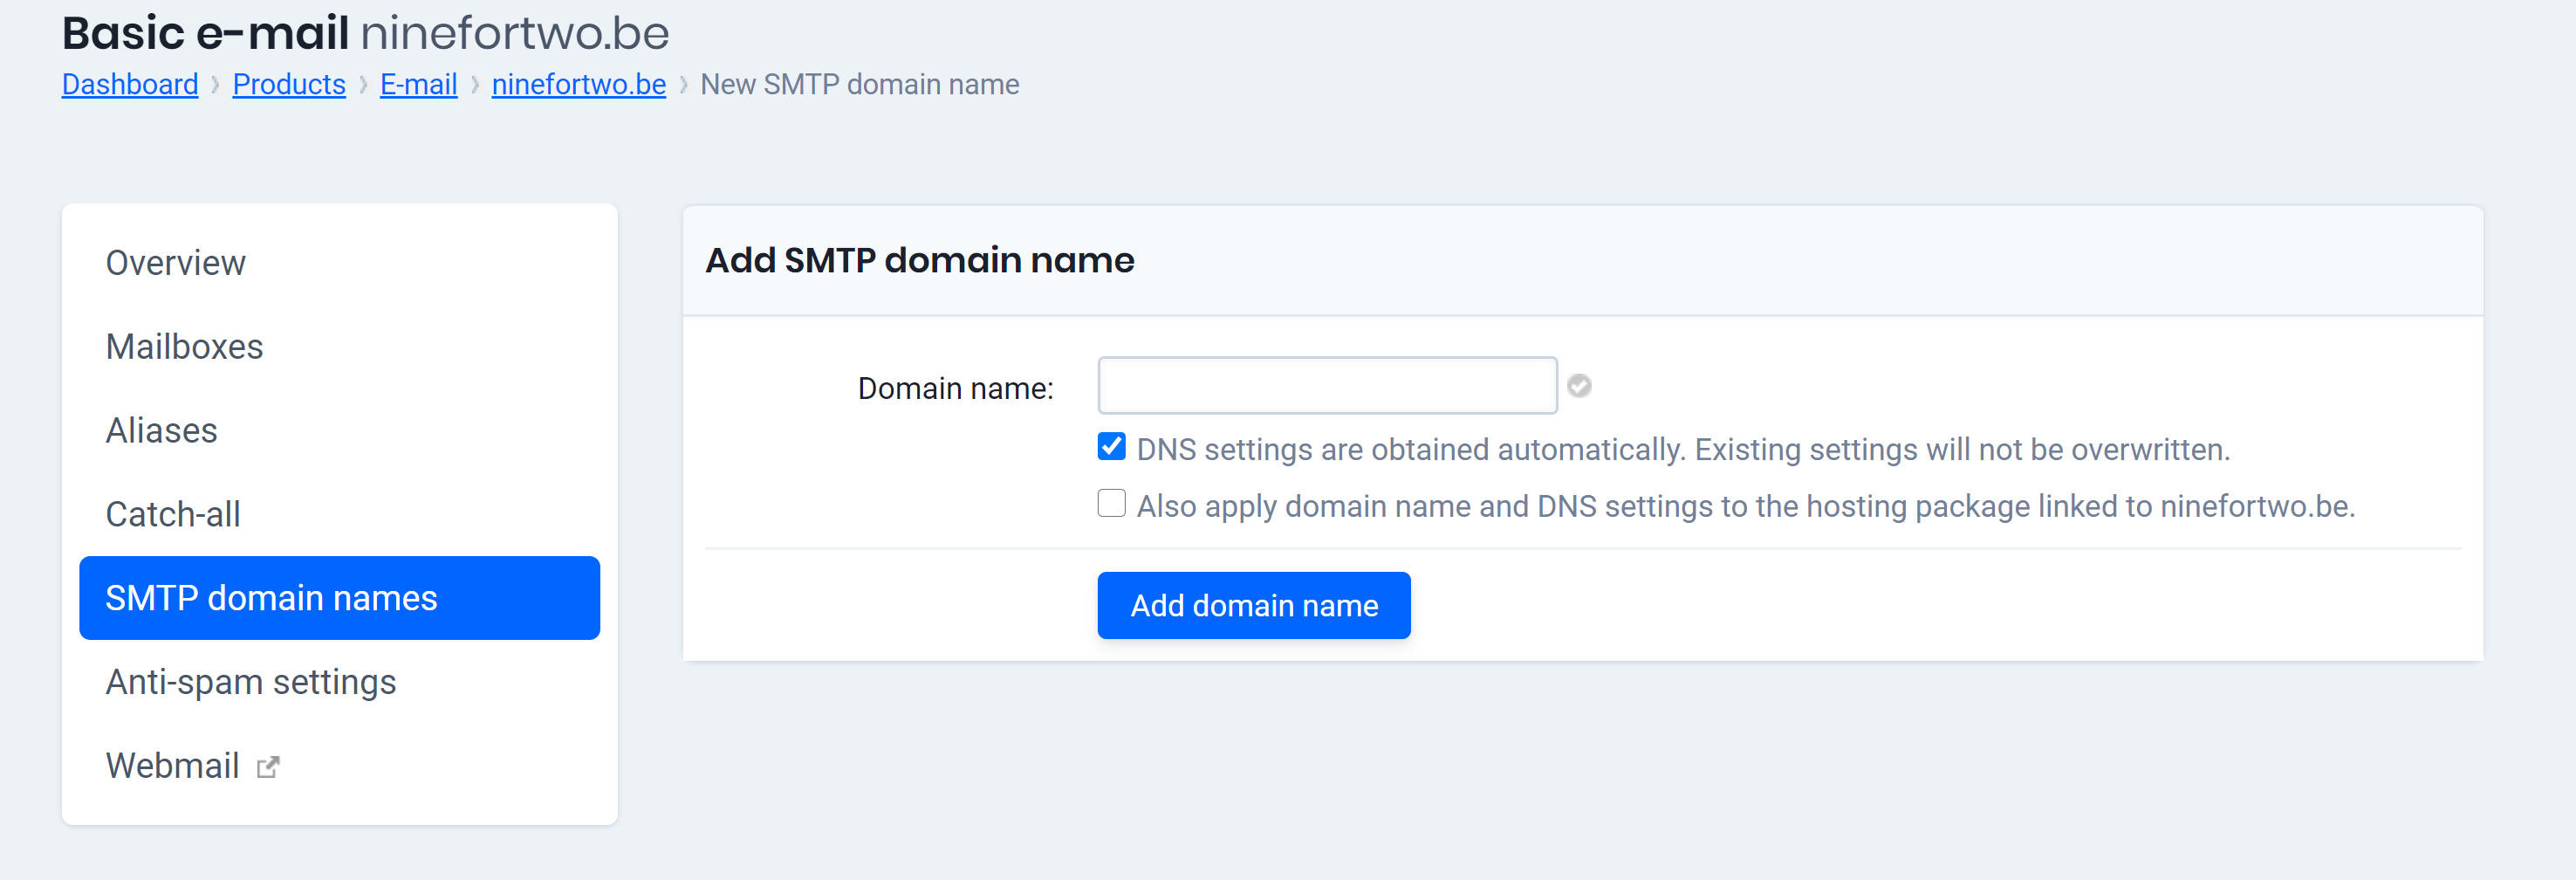 smtp domain names